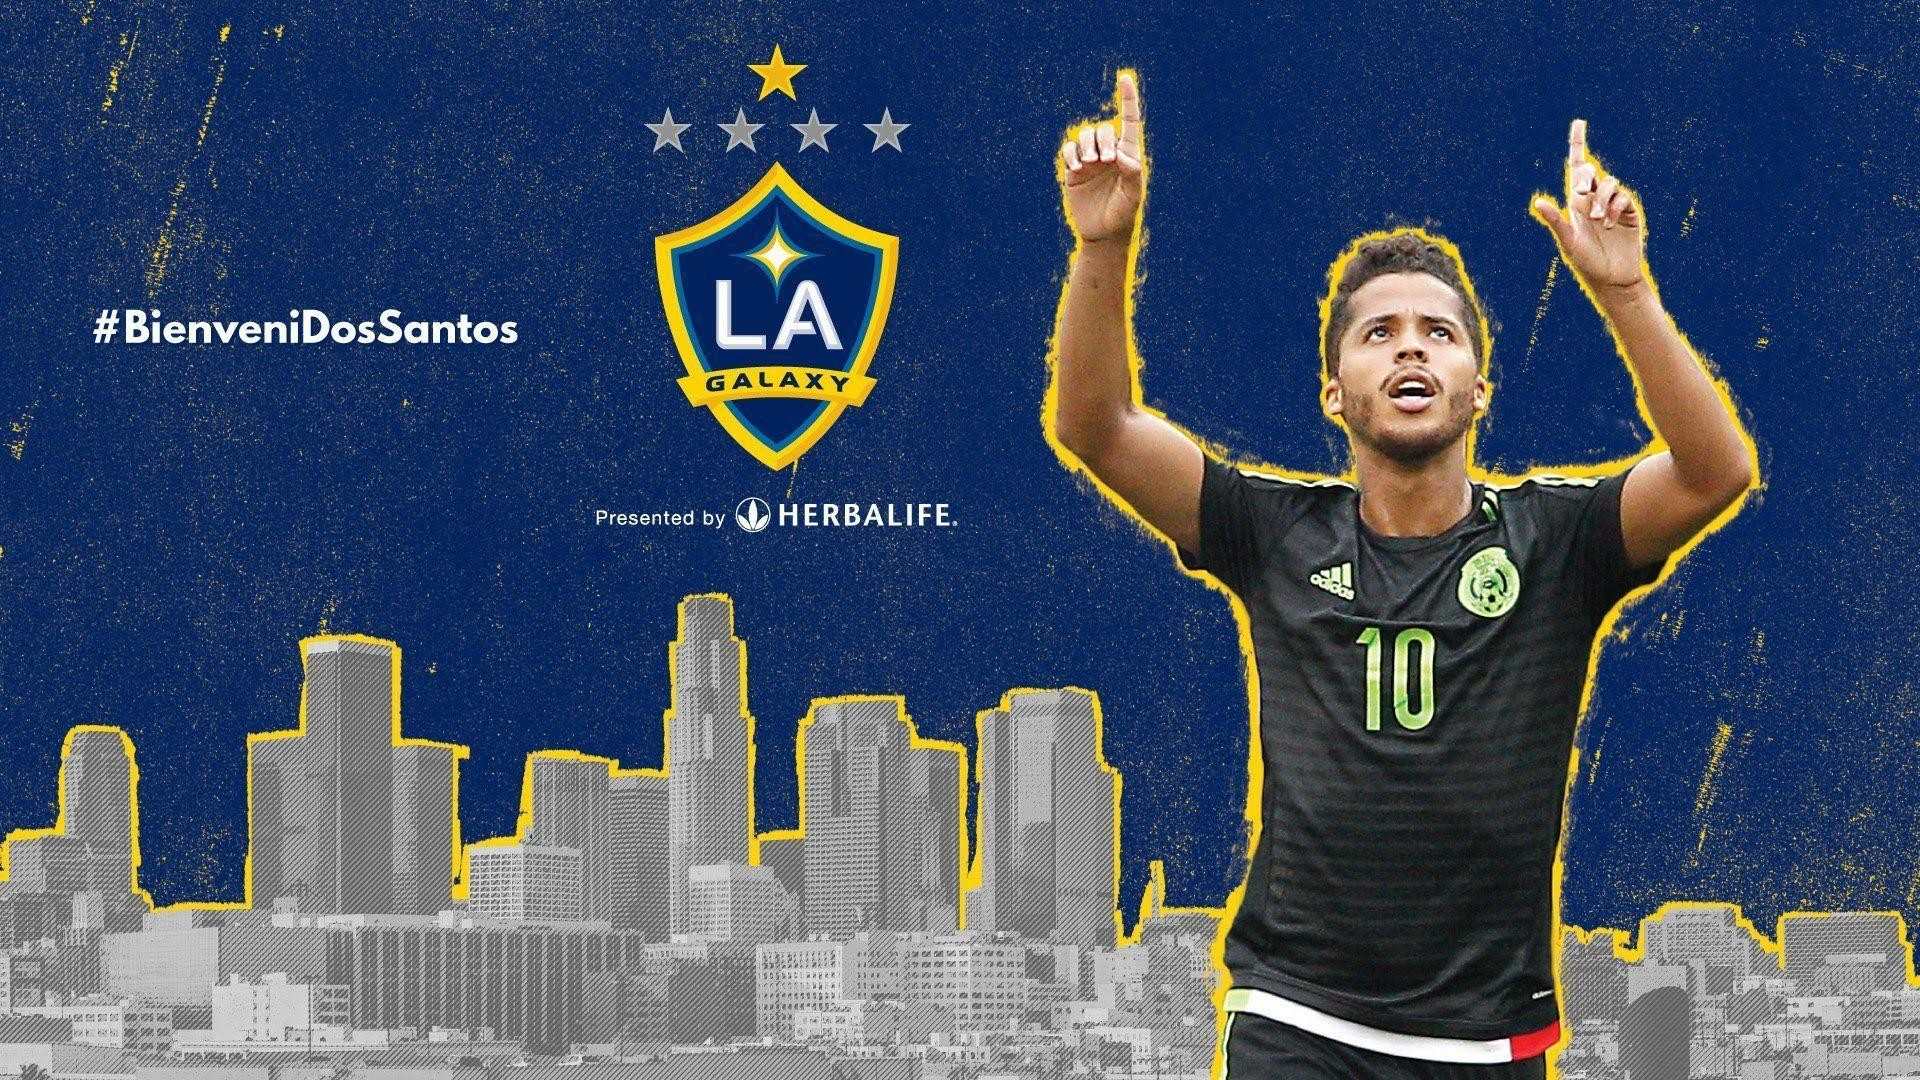 Res: 1920x1080, La Galaxy Wallpapers (34+)